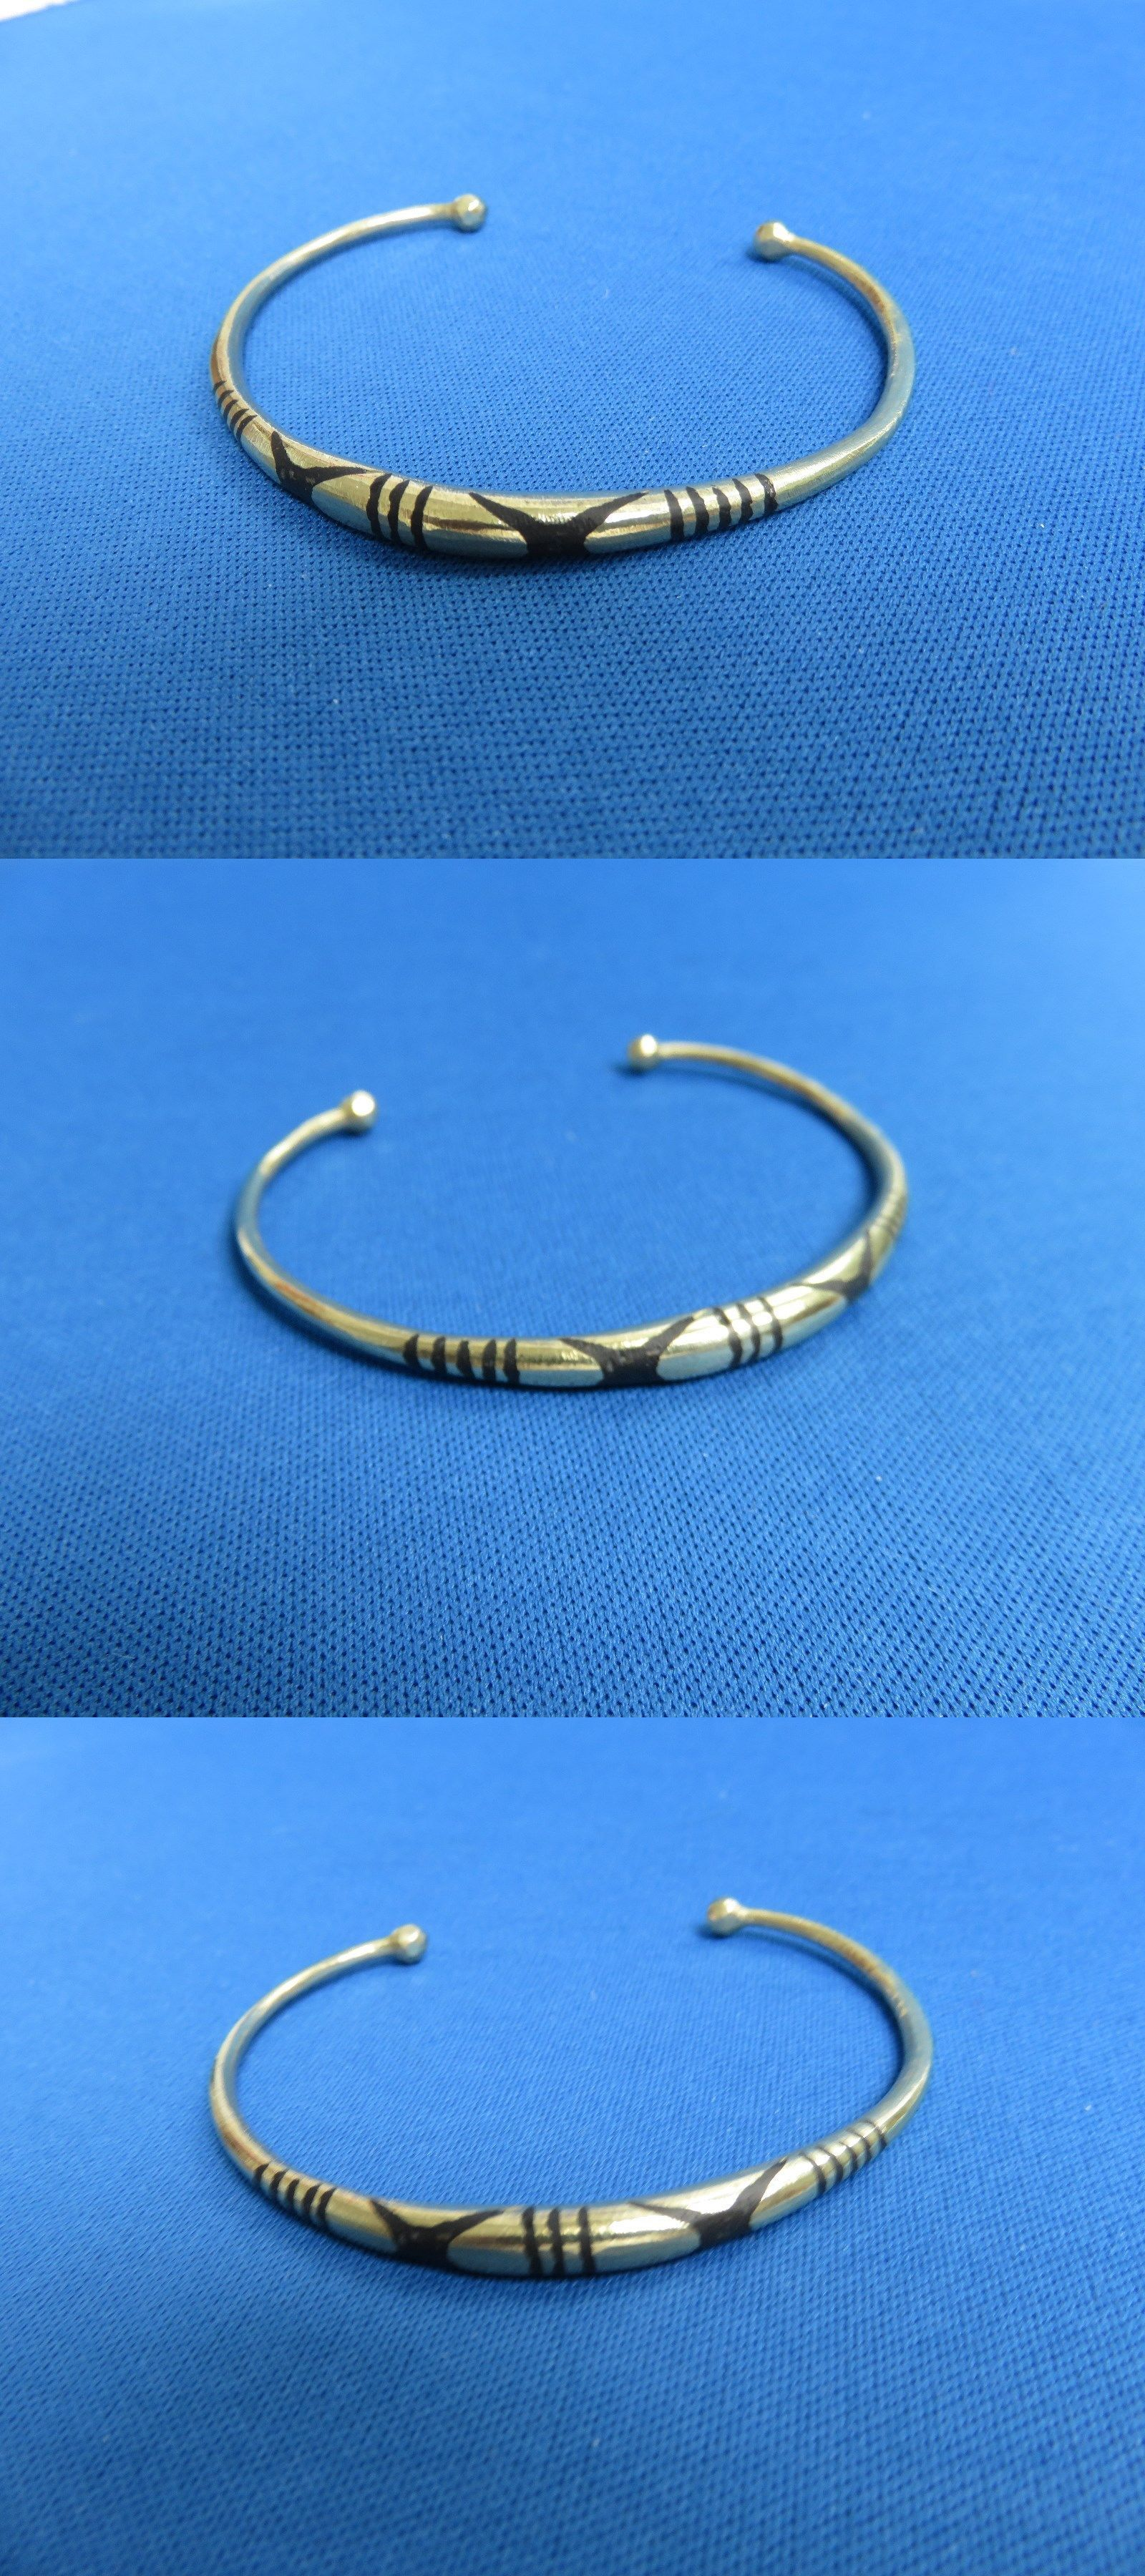 7dd82e24b Bracelets 98480: Niger African Ethnic Gold Tone Jewelry Tuareg Silver Round  Etched Bracelet L -> BUY IT NOW ONLY: $14.41 on eBay!